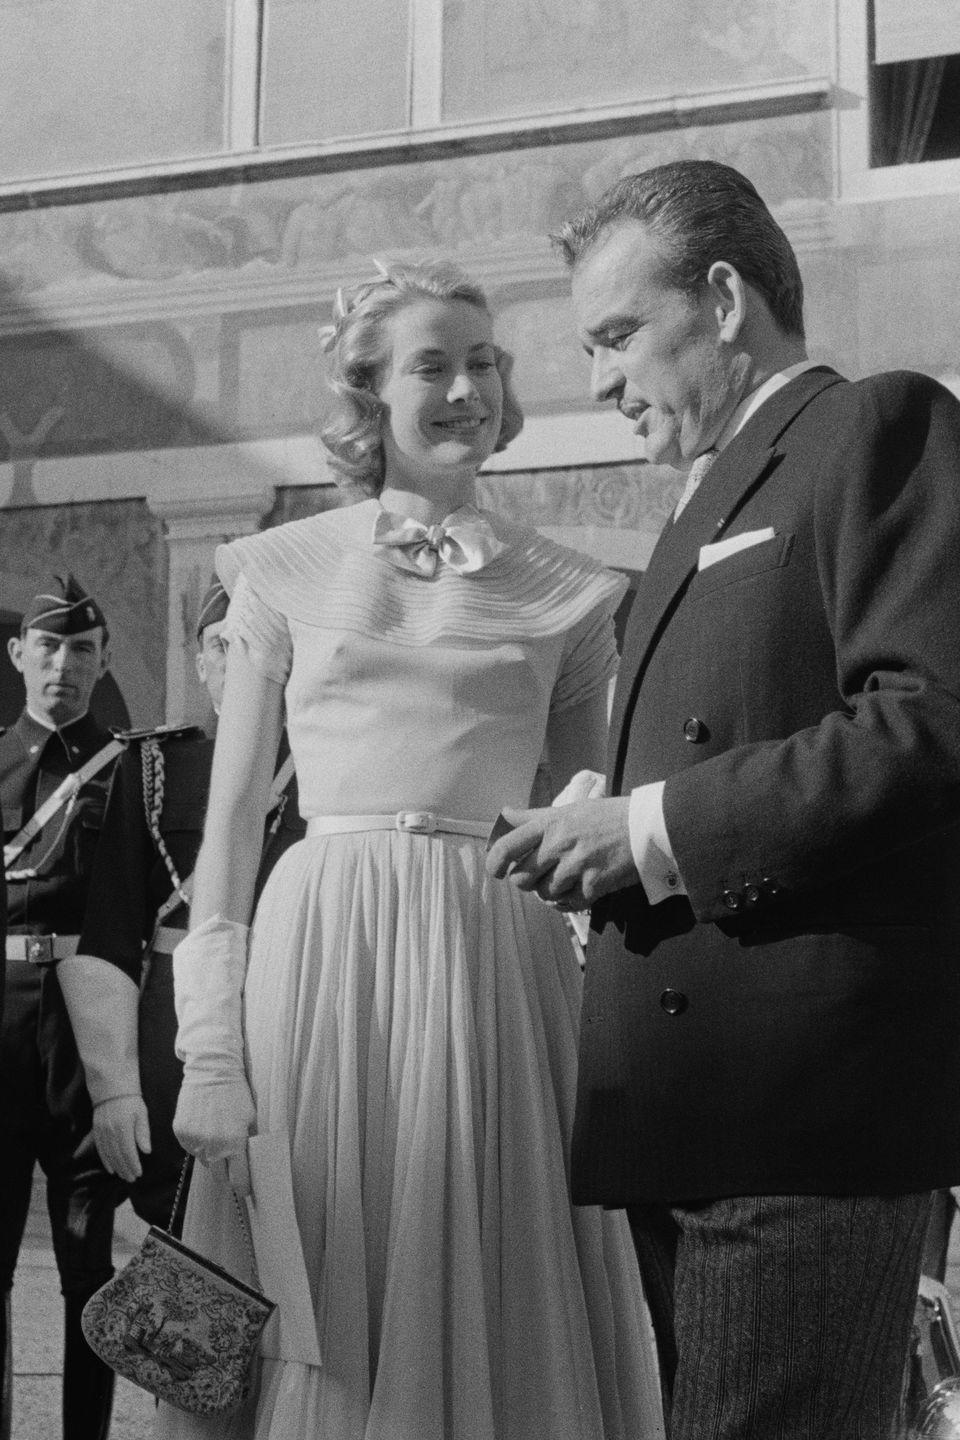 """<p>To accept wedding congratulations at a quick press conference, the actress donned another tea-length ensemble on April 18, 1956. It wasn't her last look of the day, either. She slipped into a white silk Lanvin gown that night at a gala, <a href=""""http://www.brides.com/story/grace-kelly-wedding-photos"""" rel=""""nofollow noopener"""" target=""""_blank"""" data-ylk=""""slk:Brides"""" class=""""link rapid-noclick-resp""""><em>Brides</em></a> reports. </p>"""